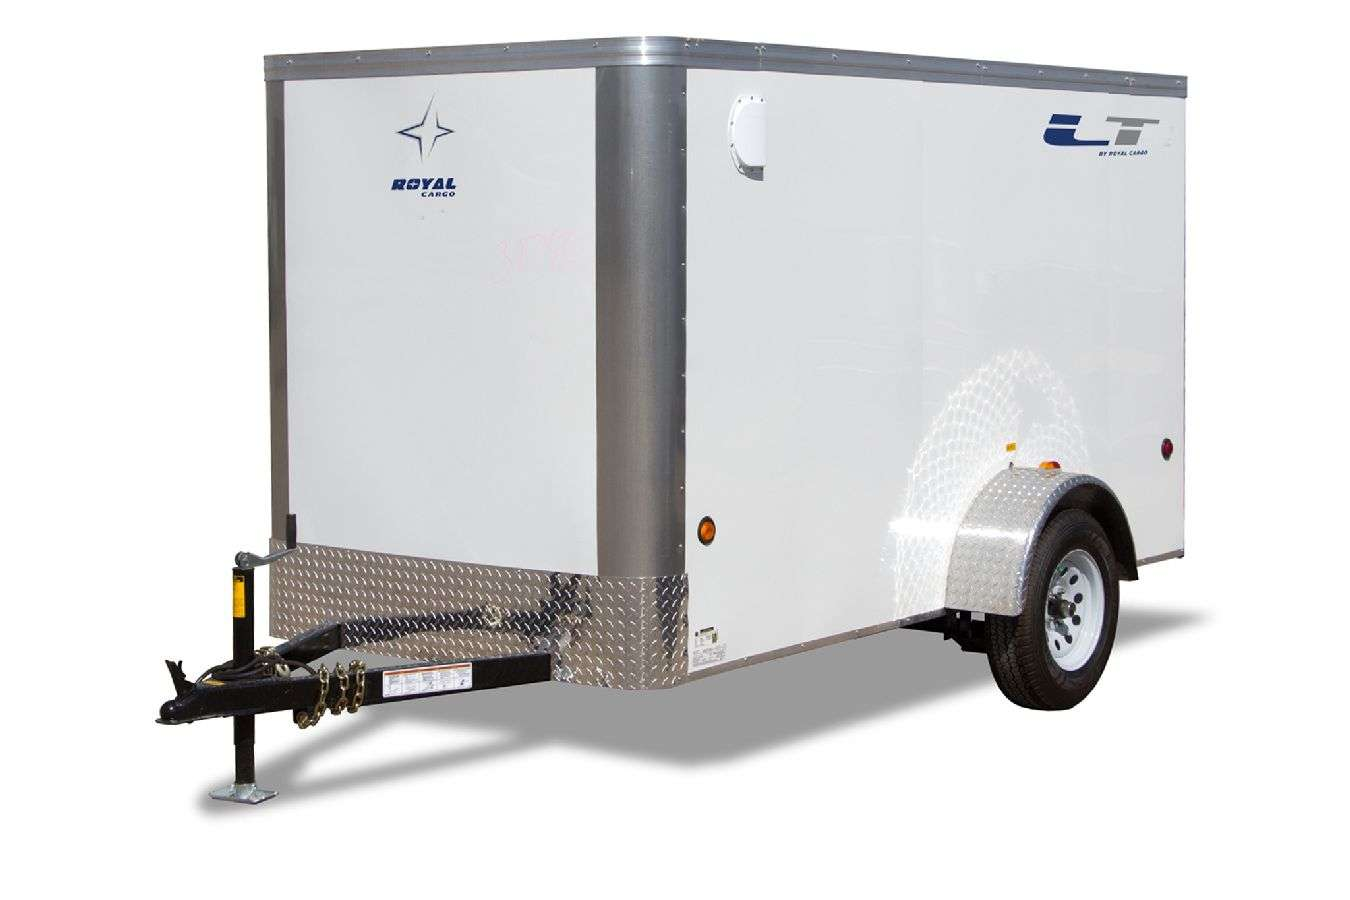 LT Series 5' Cargo Trailers